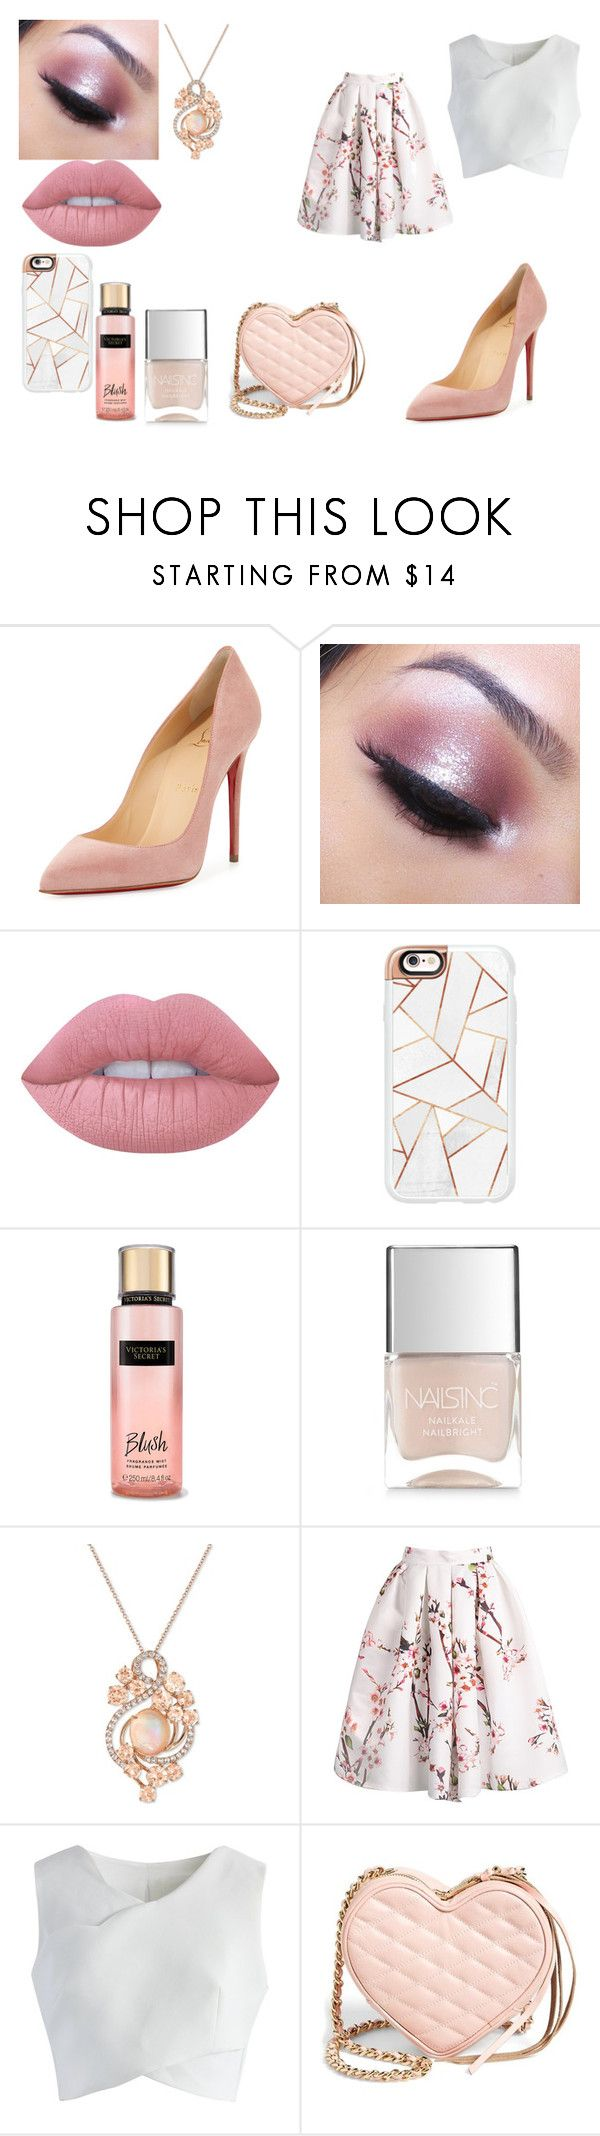 """Untitled #17"" by overeducatedqueen ❤ liked on Polyvore featuring Christian Louboutin, Too Faced Cosmetics, Lime Crime, Casetify, Victoria's Secret, Nails Inc., LE VIAN, Chicwish and Rebecca Minkoff"